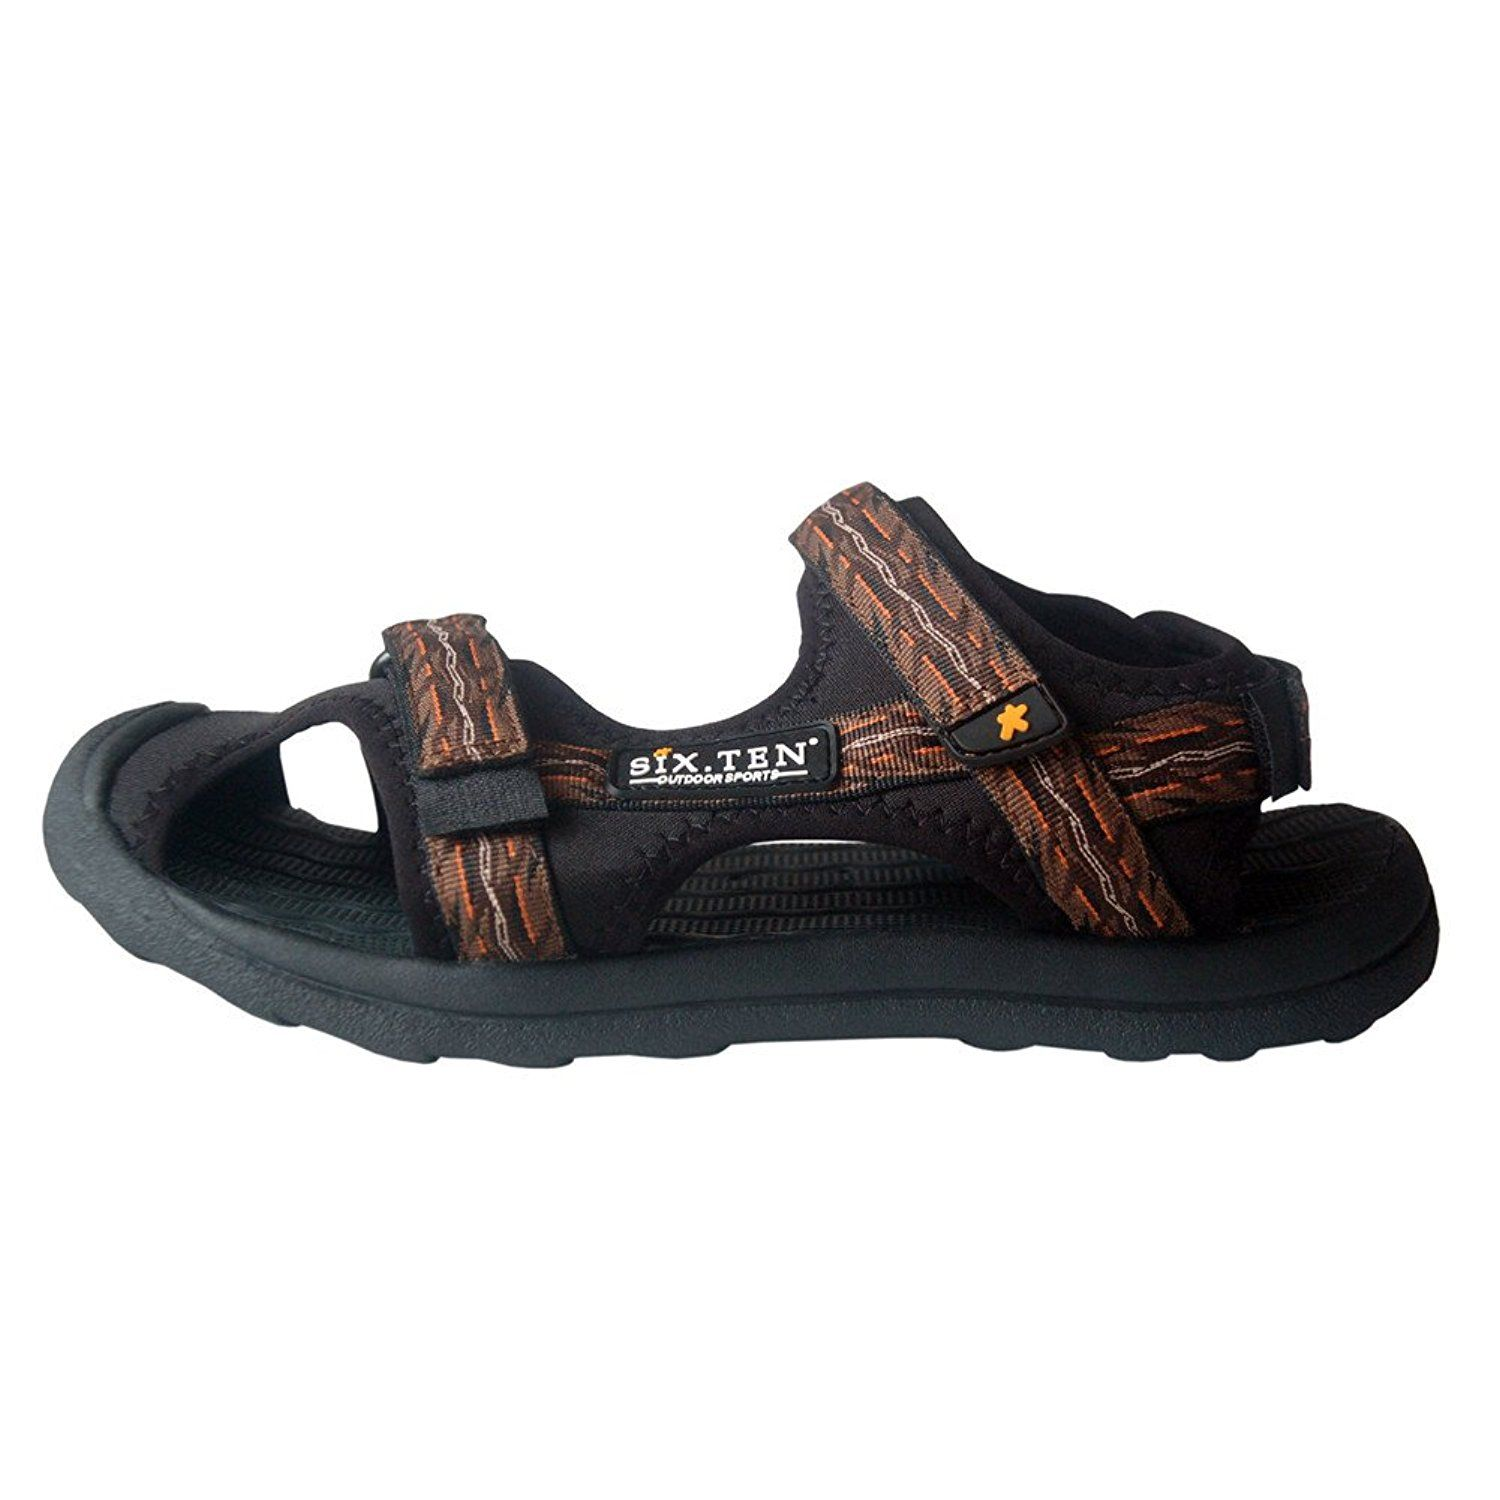 SIX.TEN Women's Outdoor Hiking Sport Sandals Closed-Toe Water Shoes >>>  Quickly view this special product, … | Women sport sandals, Womens sandals, Outdoor  sandals